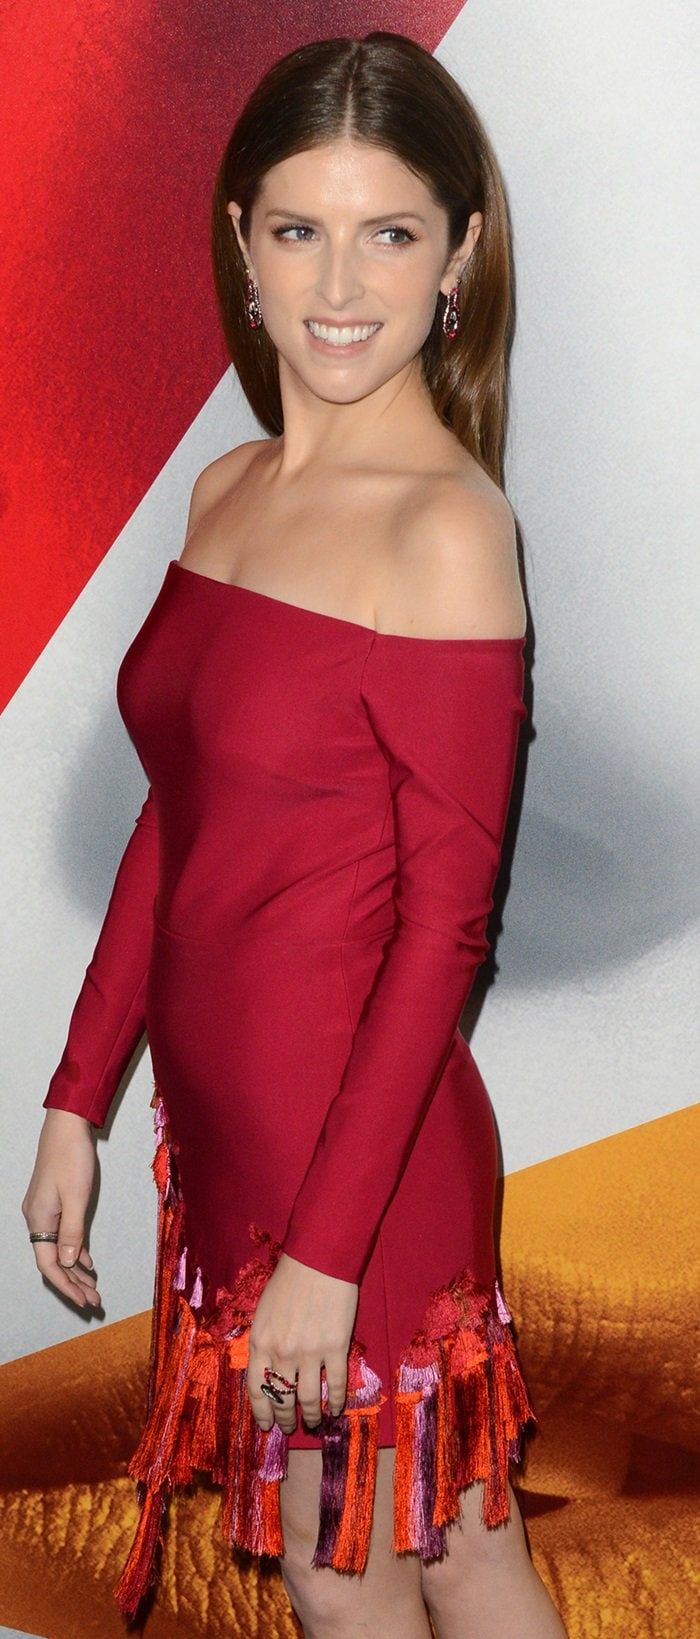 Anna Kendrick's 'Sawyer' off the shoulder dress from the Cushnie et Ochs Resort 2019 Collection